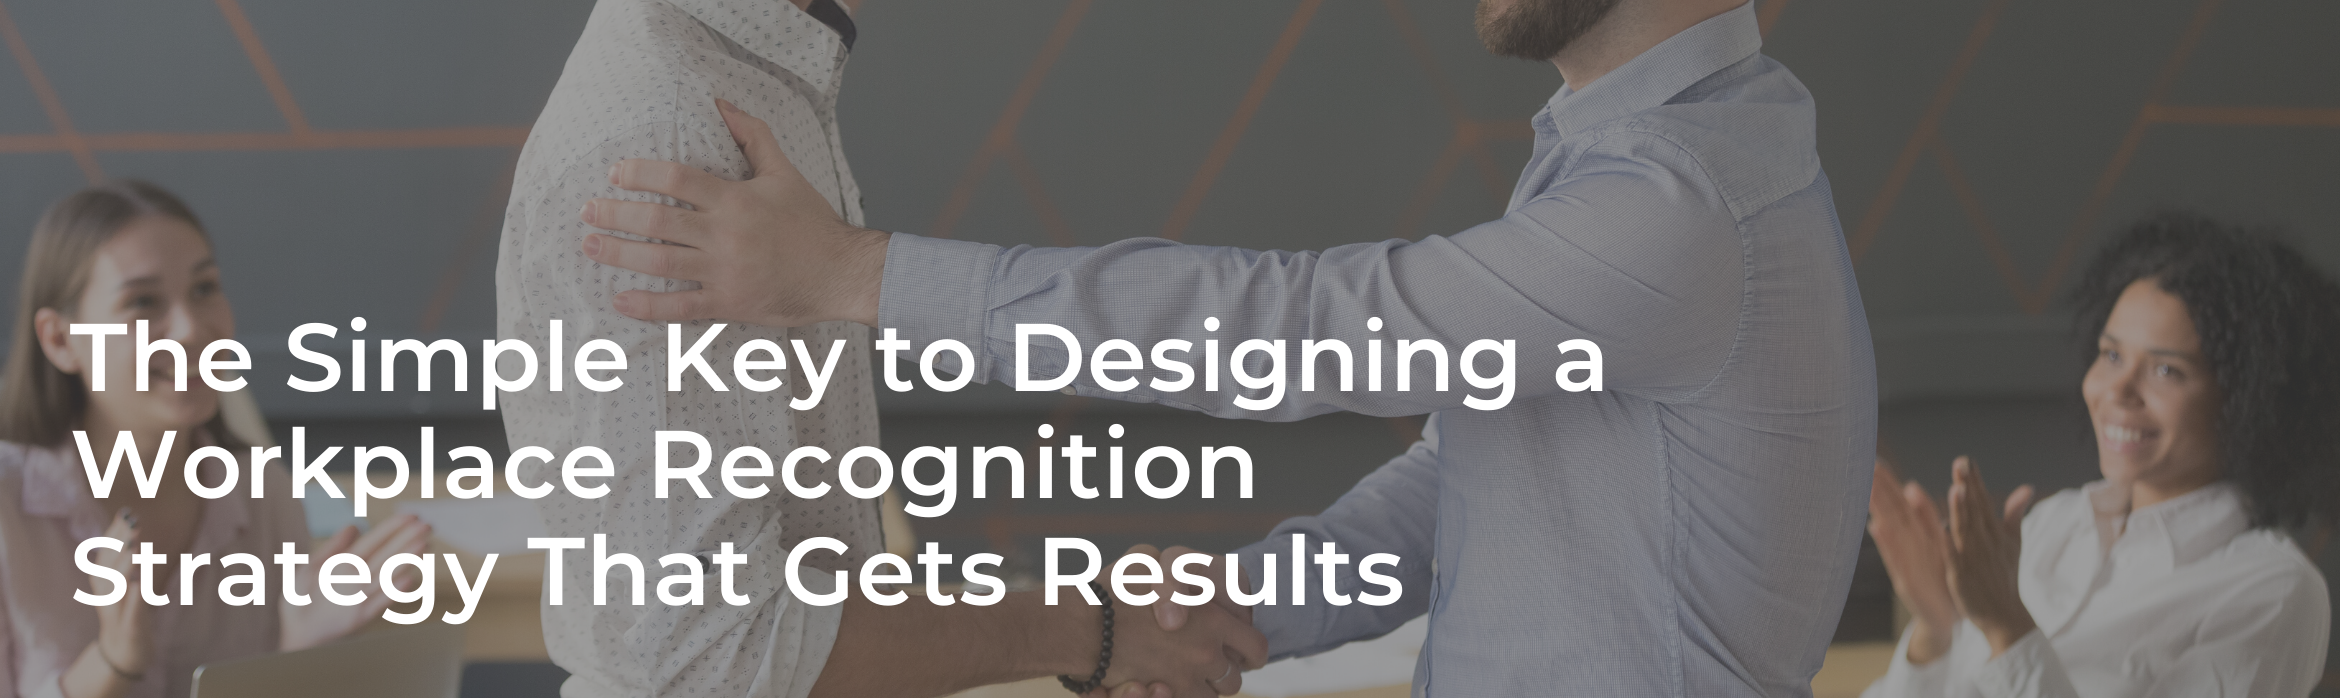 The Simple Key to Designing a Workplace Recognition Strategy That Gets Results